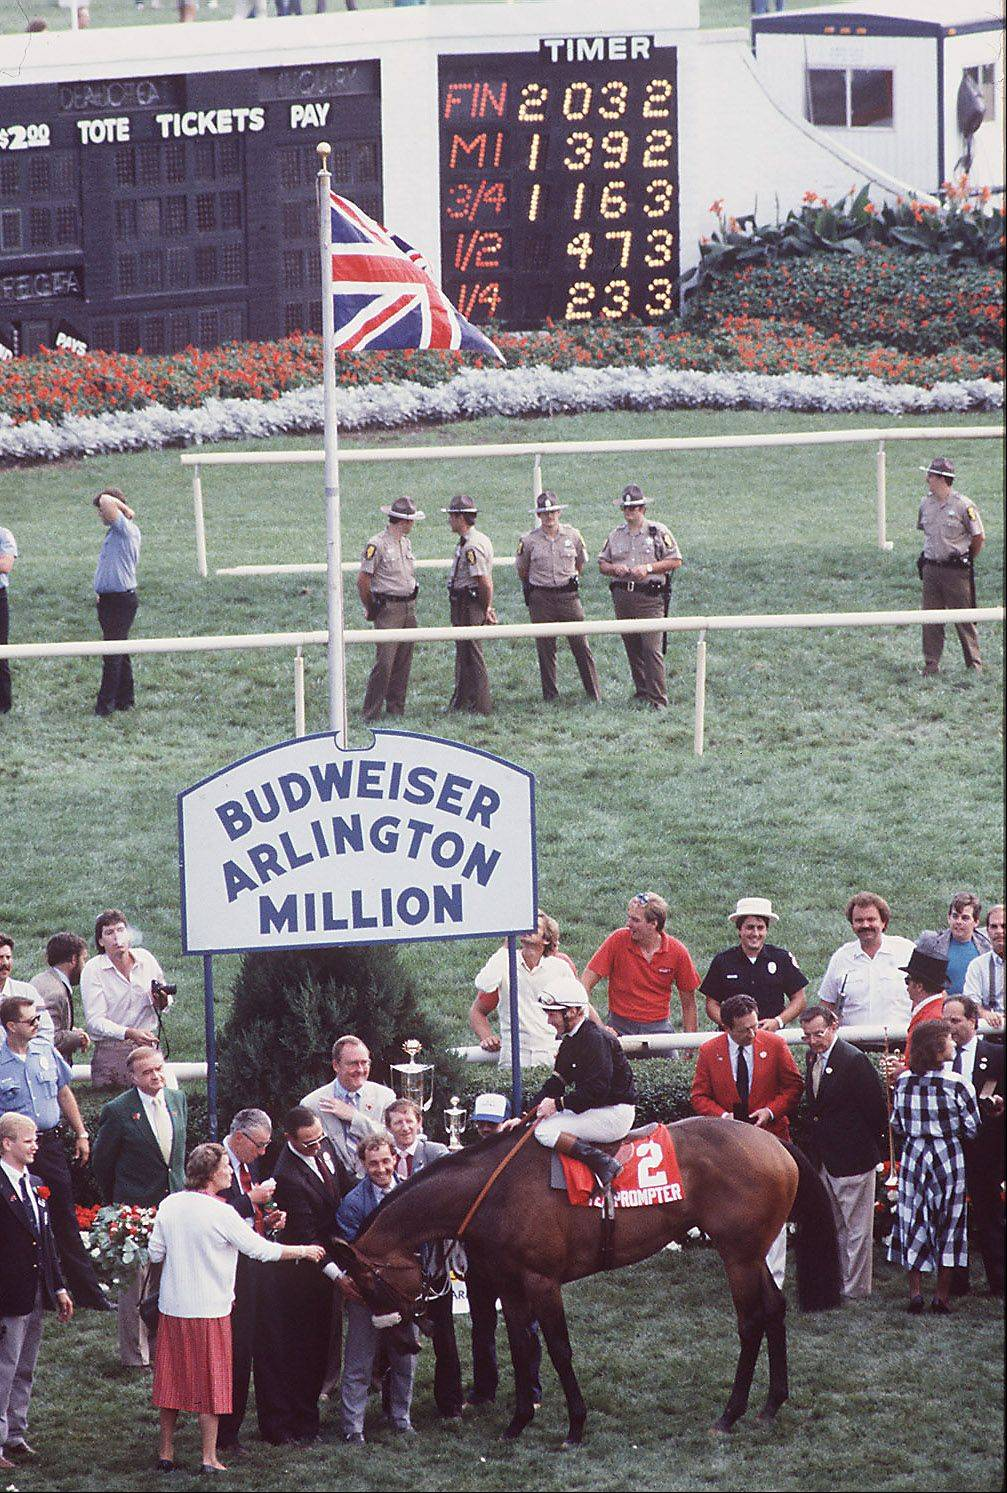 Teleprompter receives accolades as the winner of the Miracle Million at Arlington Park just 25 days after a fire burned the original Arlington to the ground.